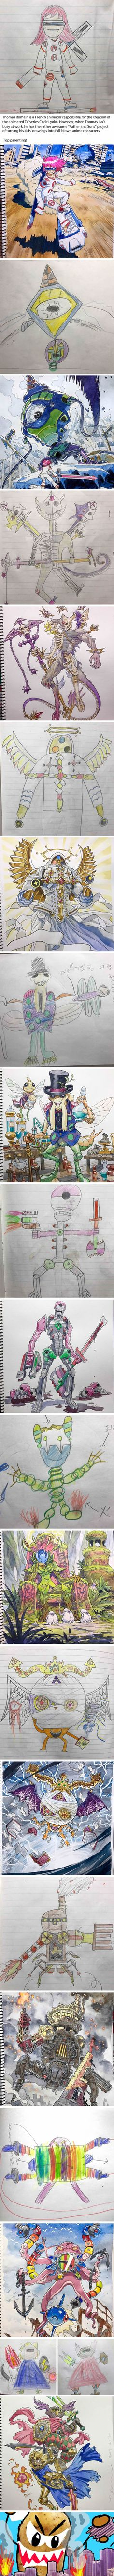 Talented Dad Transforms Son's Drawings Into Awesome Anime Characters